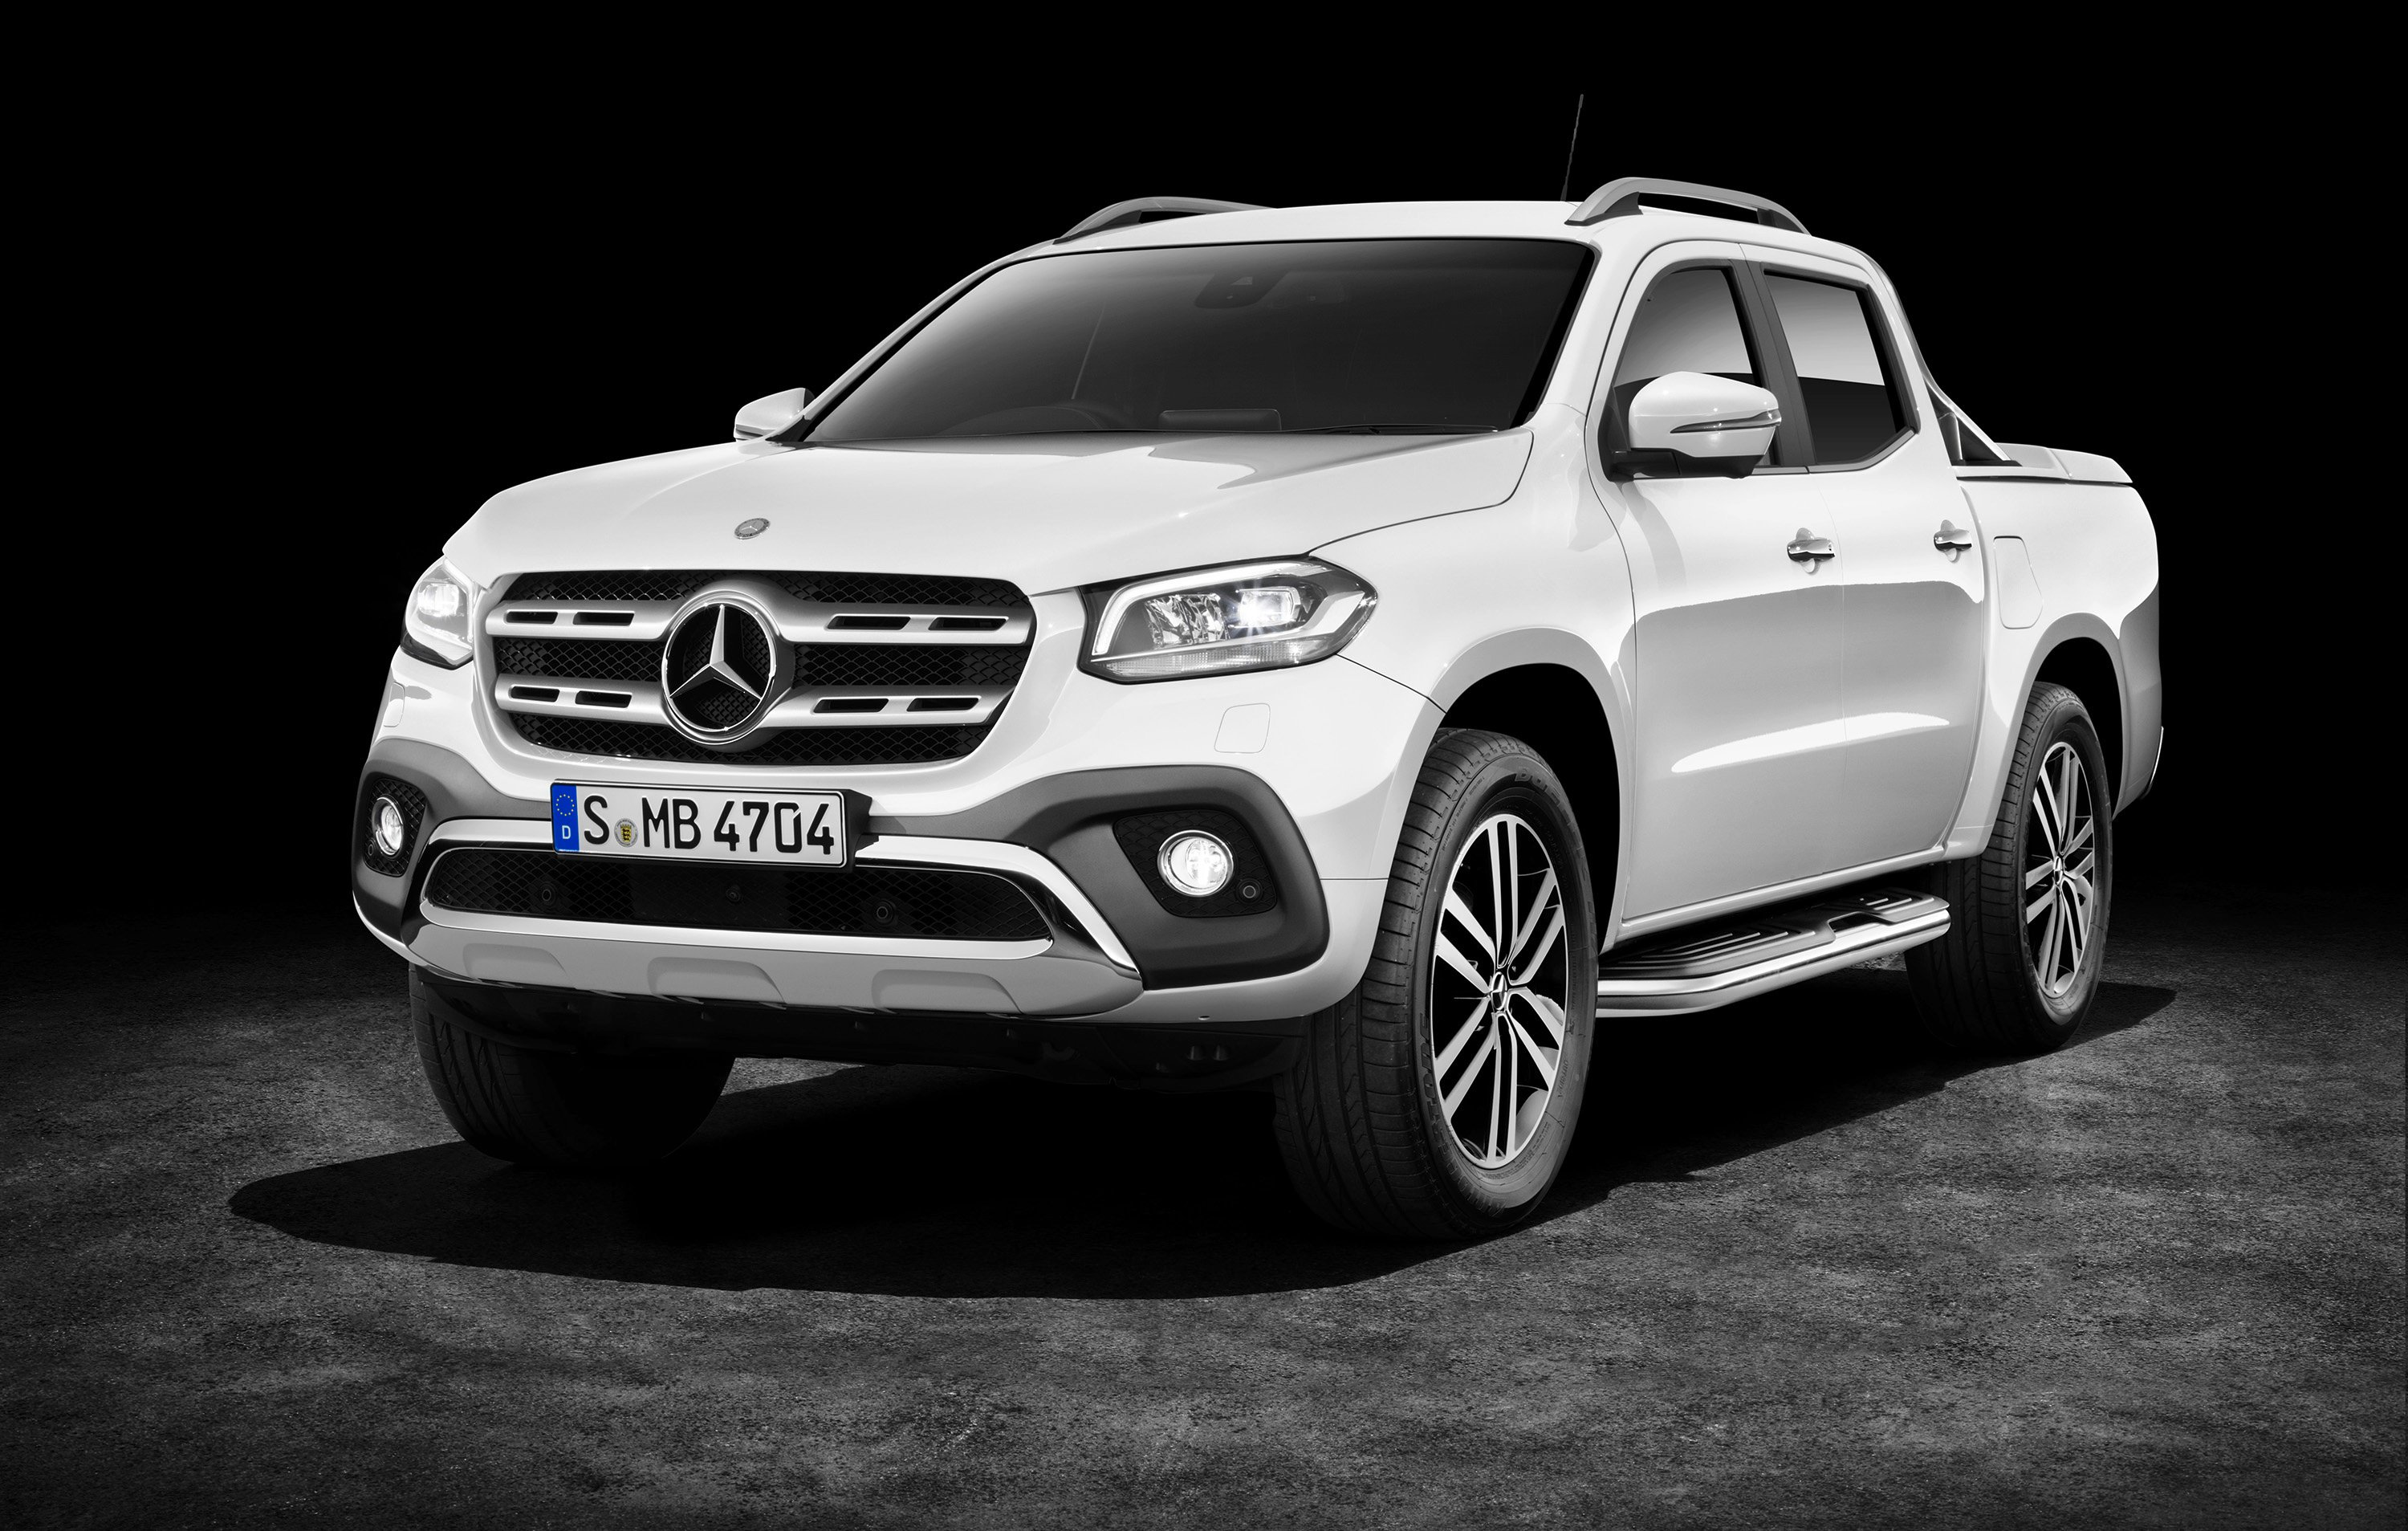 2018 mercedes benz x class ute australian details emerge. Black Bedroom Furniture Sets. Home Design Ideas